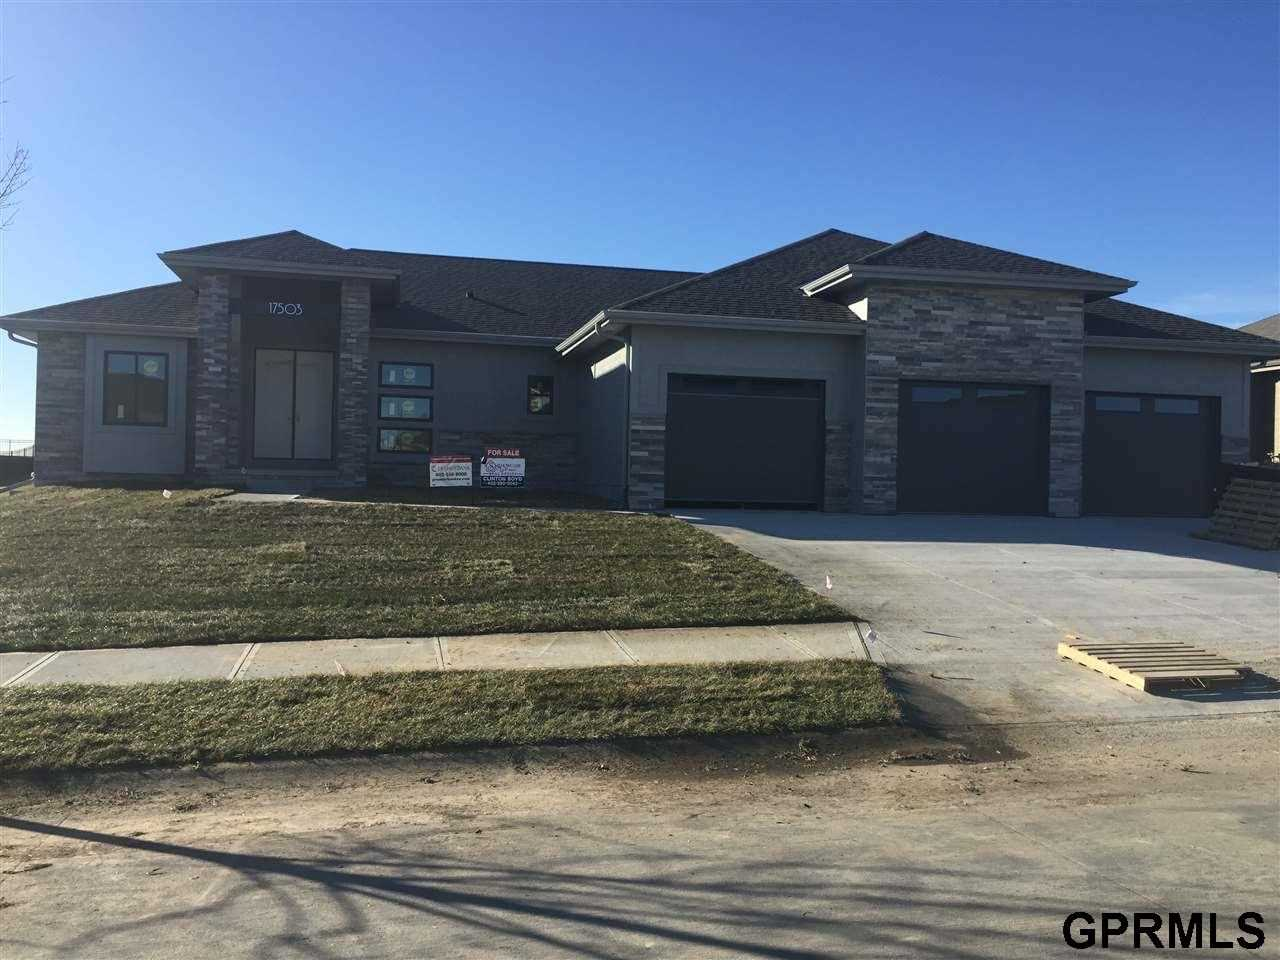 17503 RIDGEMONT Gretna, NE 68136 | MLS 21719922 Photo 1